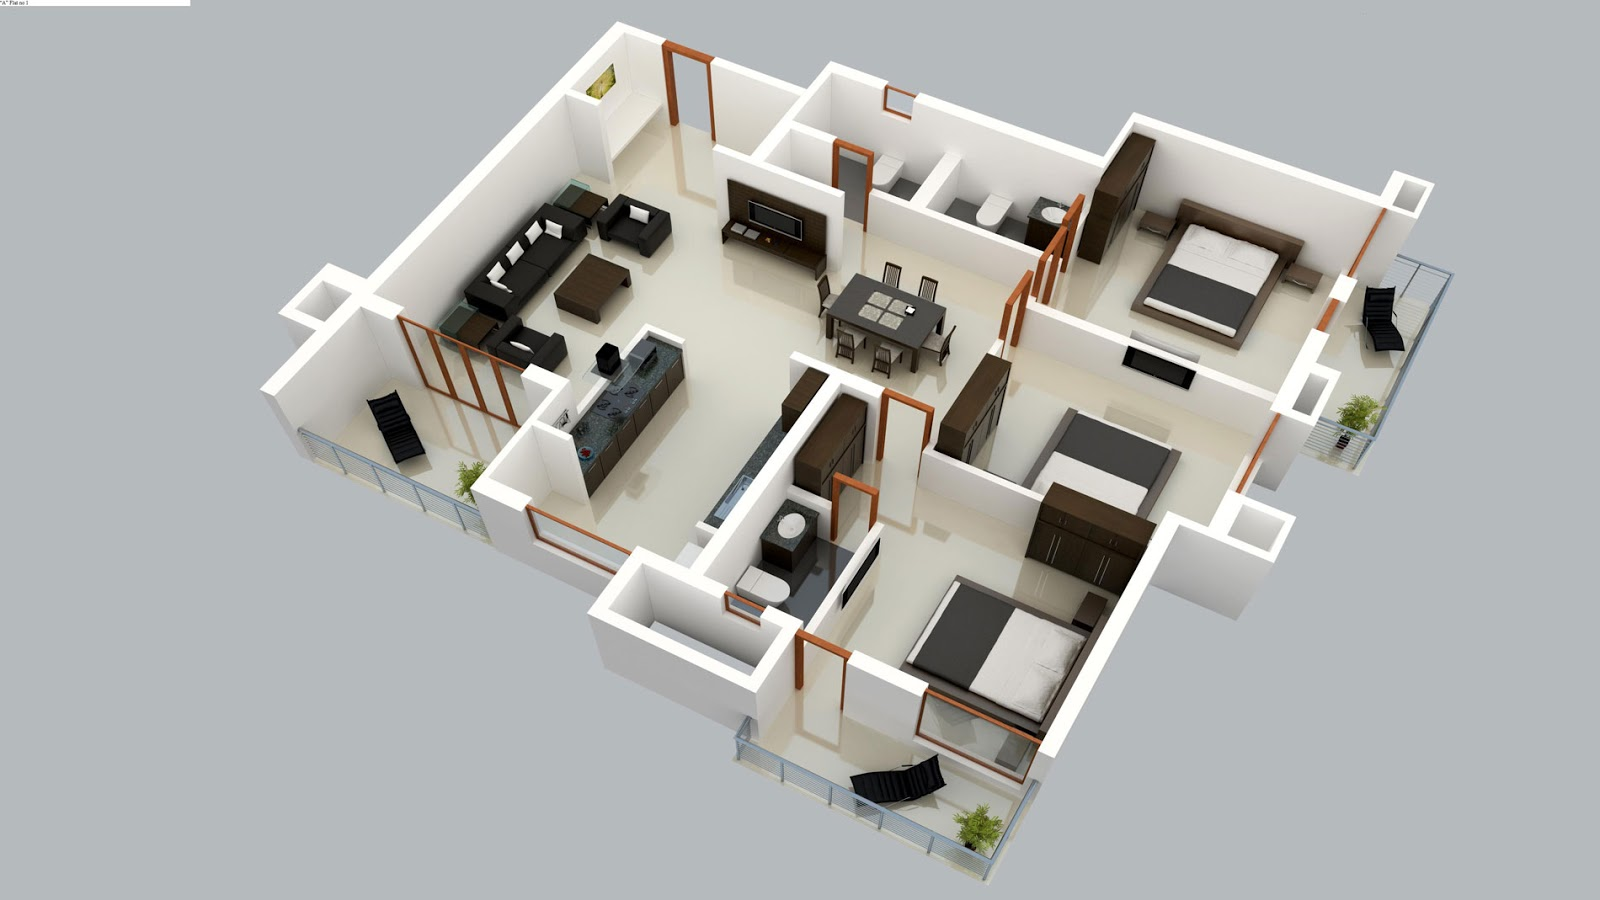 dezin decor 3d plan layout furniture placement residence